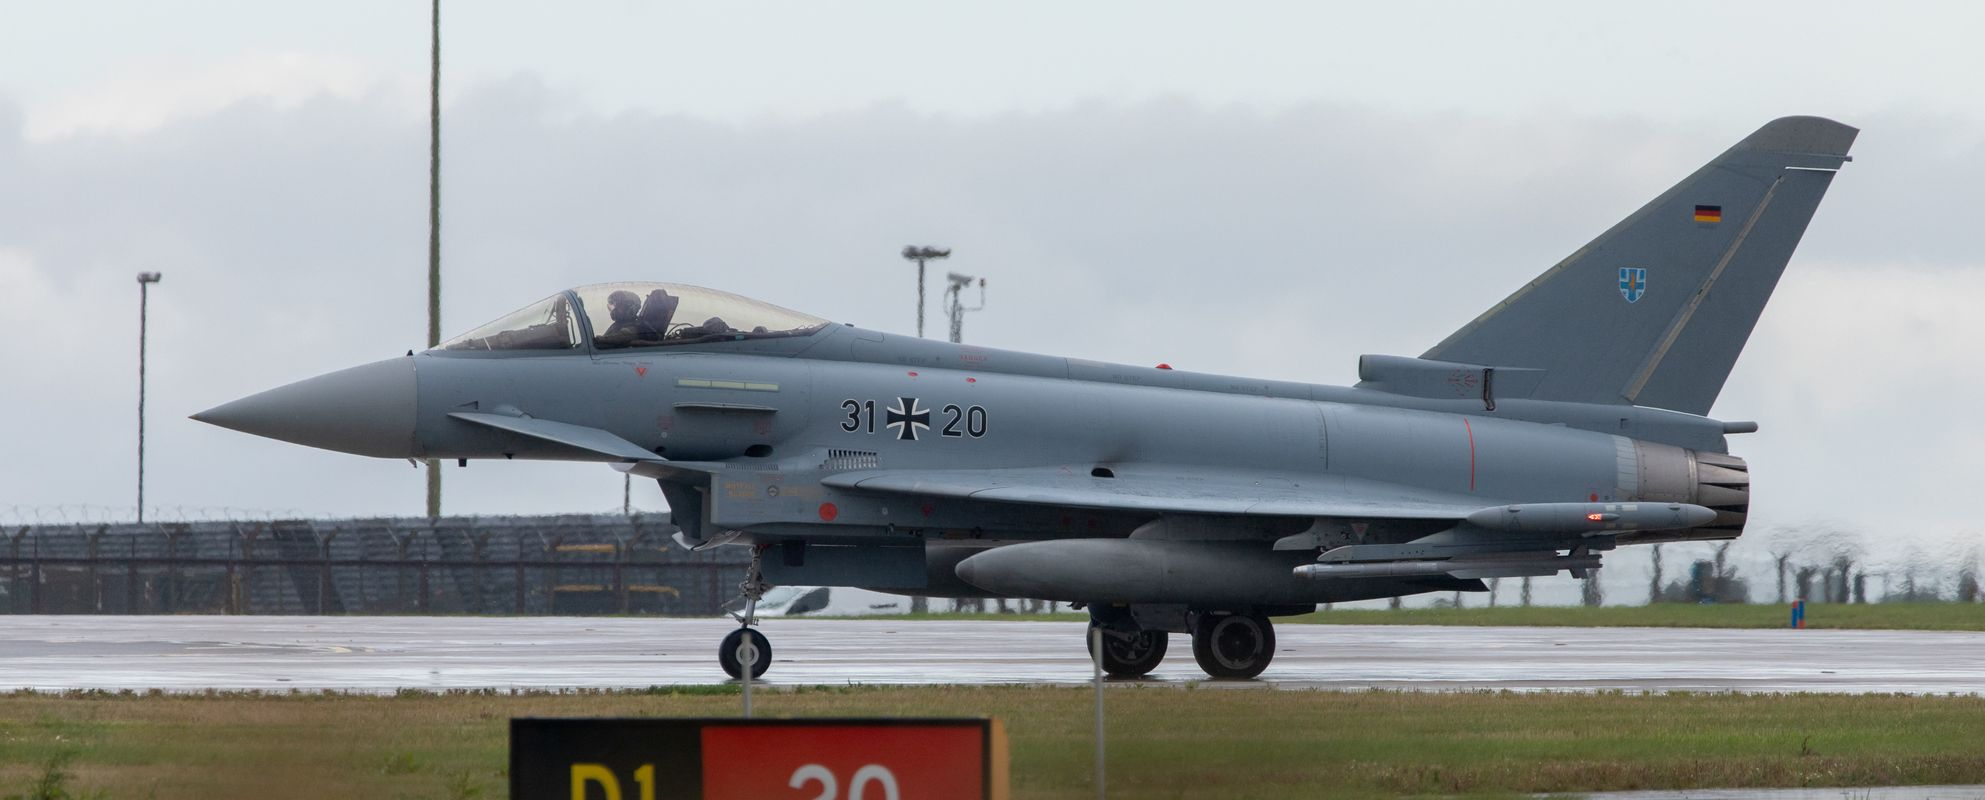 German Eurofighter (EF2000) by Clive Wells